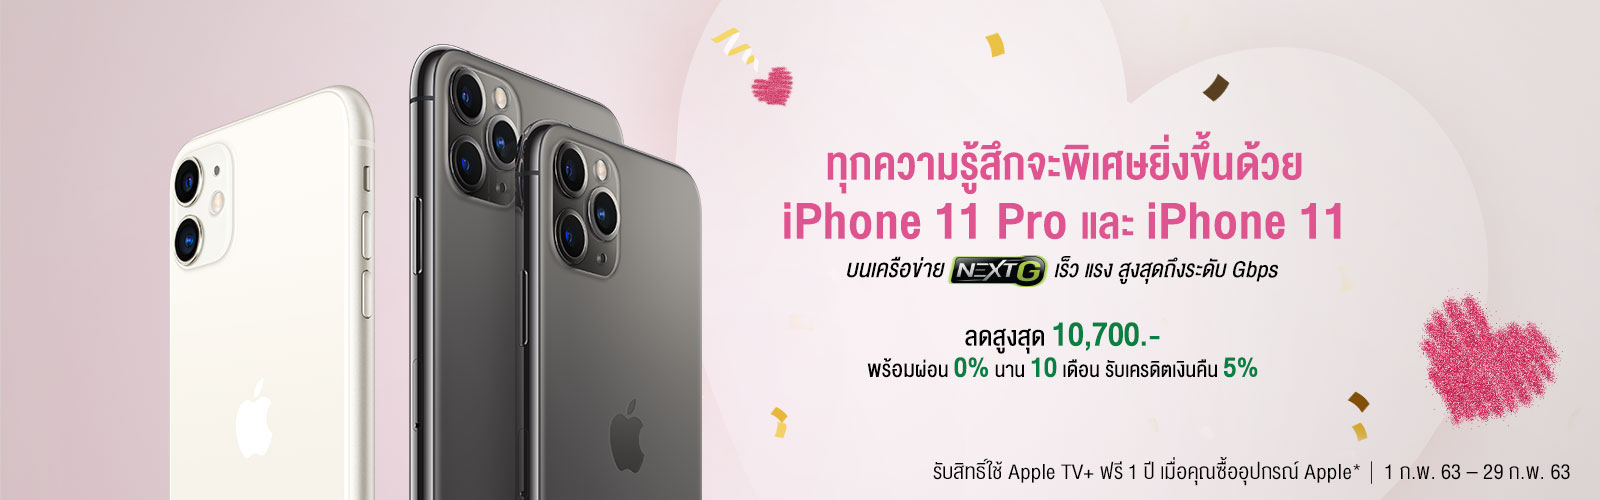 iPhone 11_TH